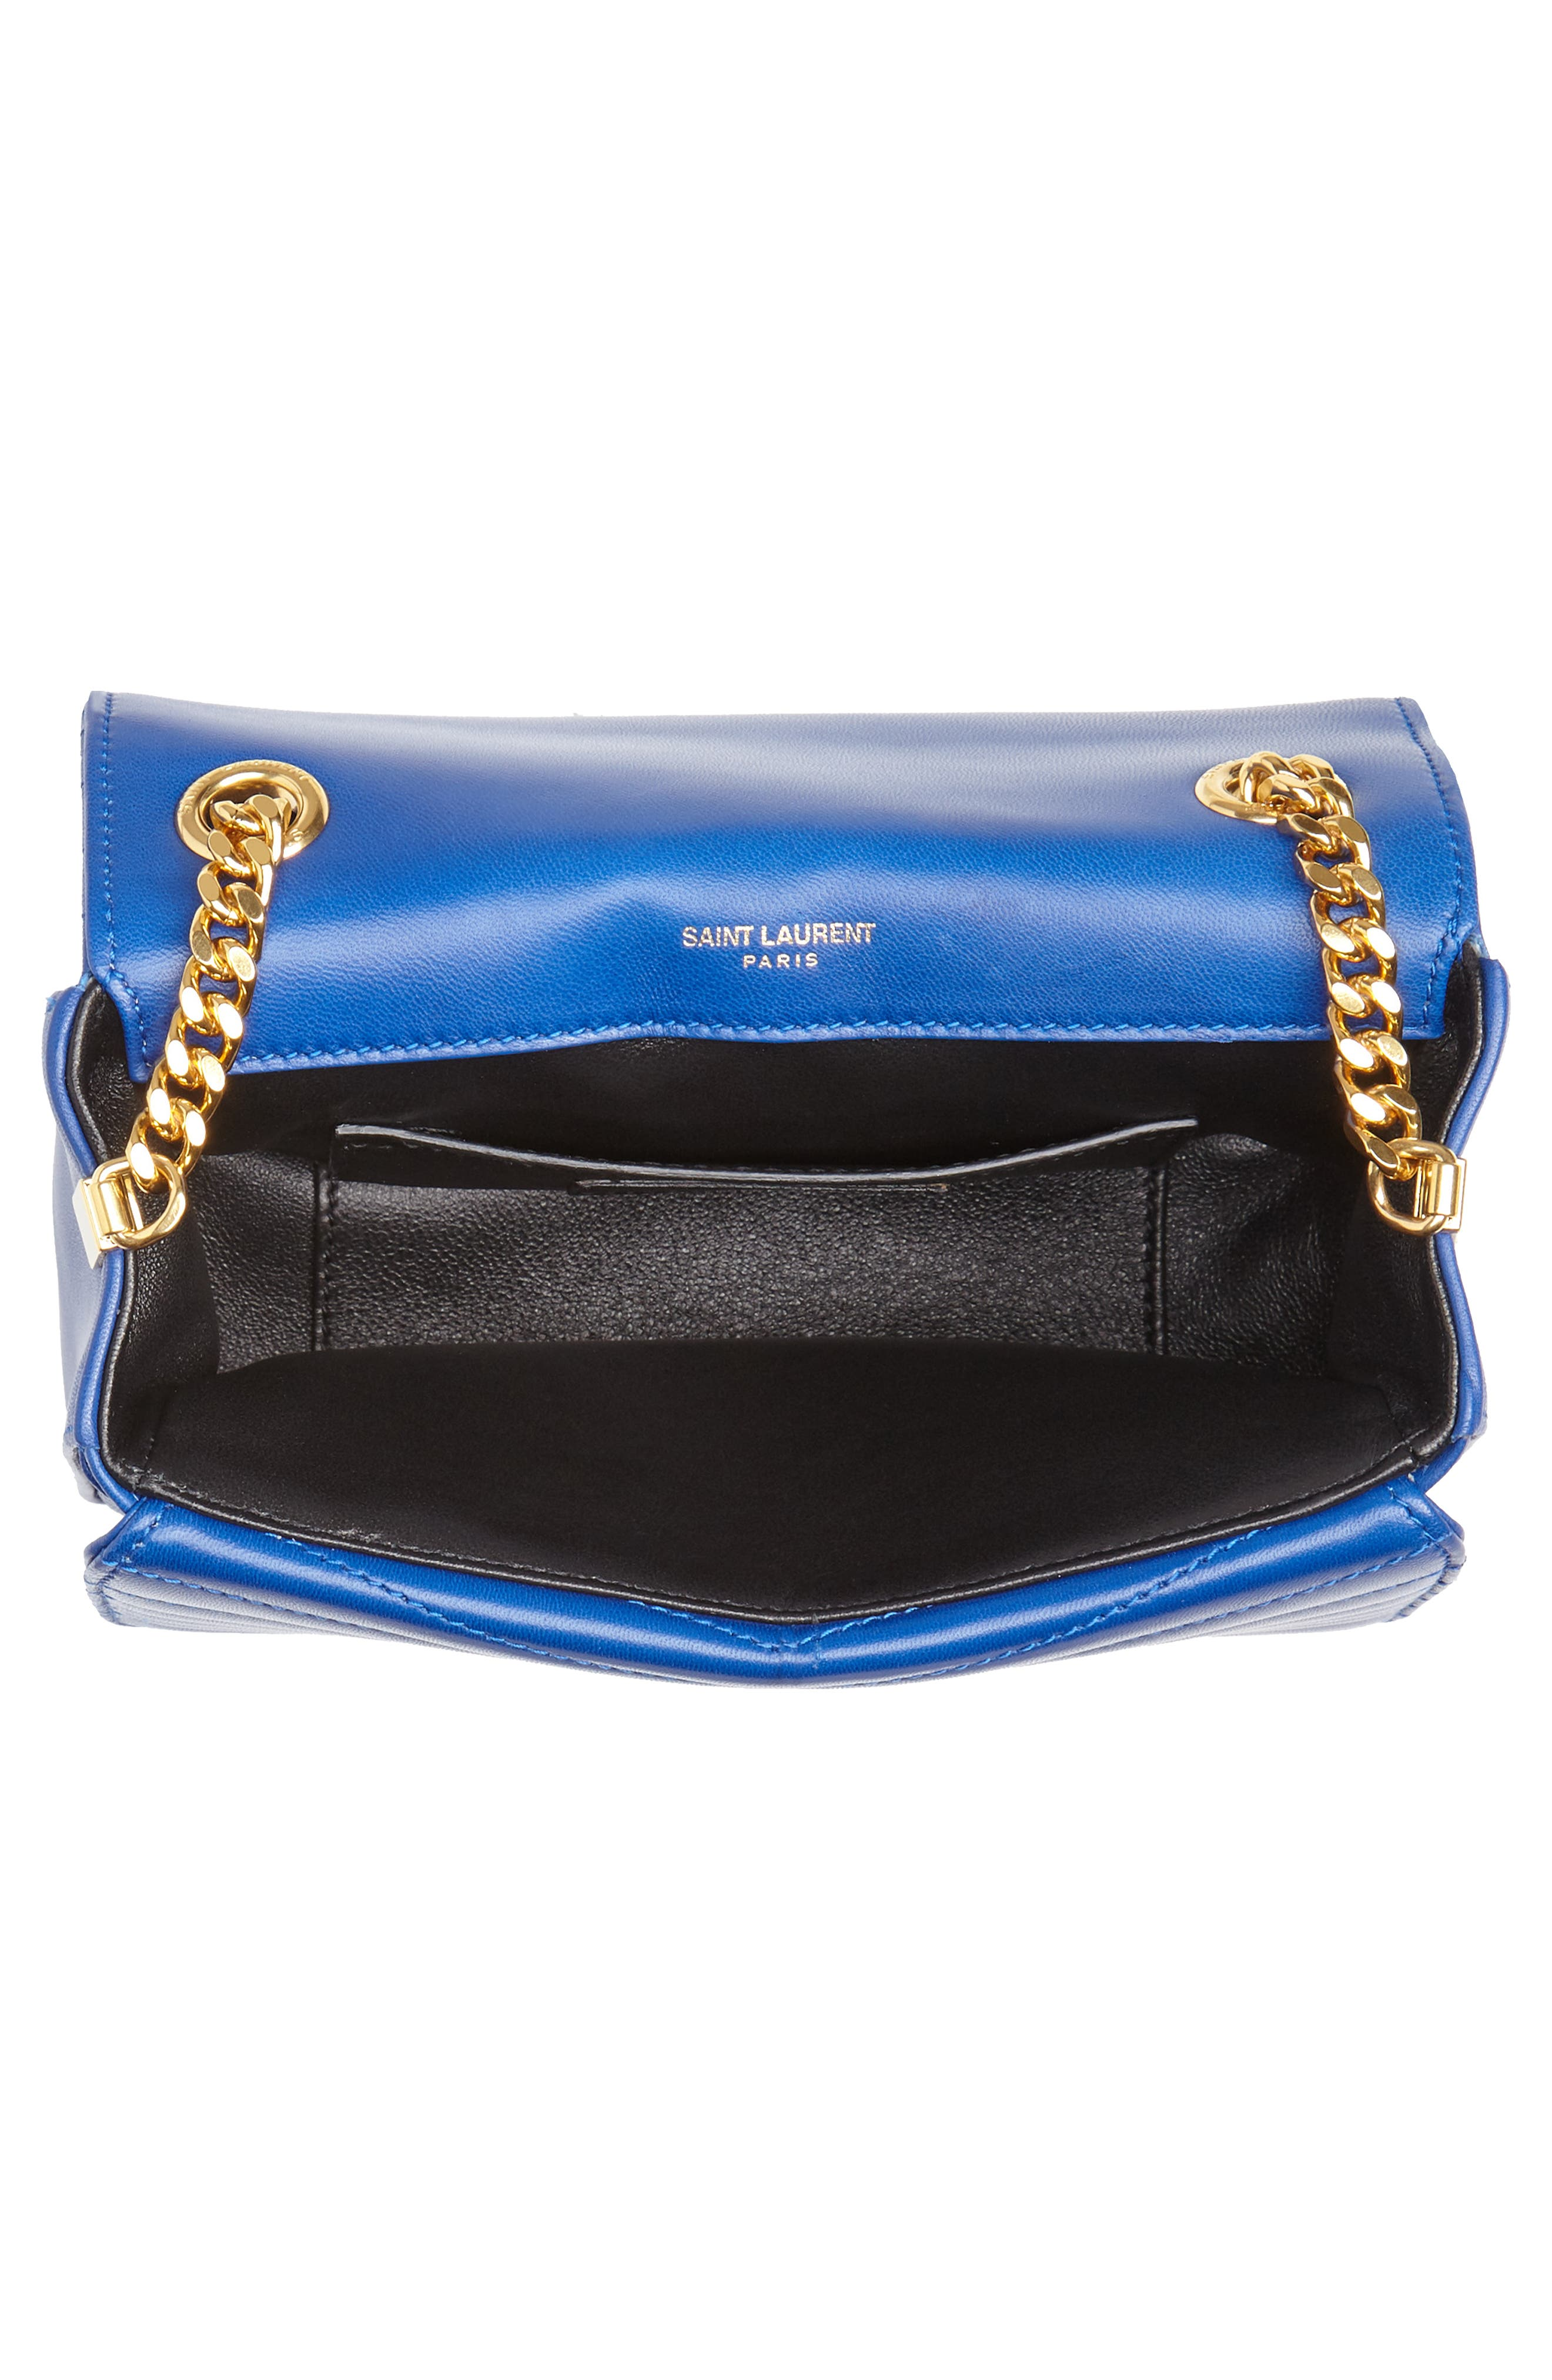 Montaigne Quilted Lambskin Crossbody Bag,                             Alternate thumbnail 4, color,                             BRIGHT BLUE